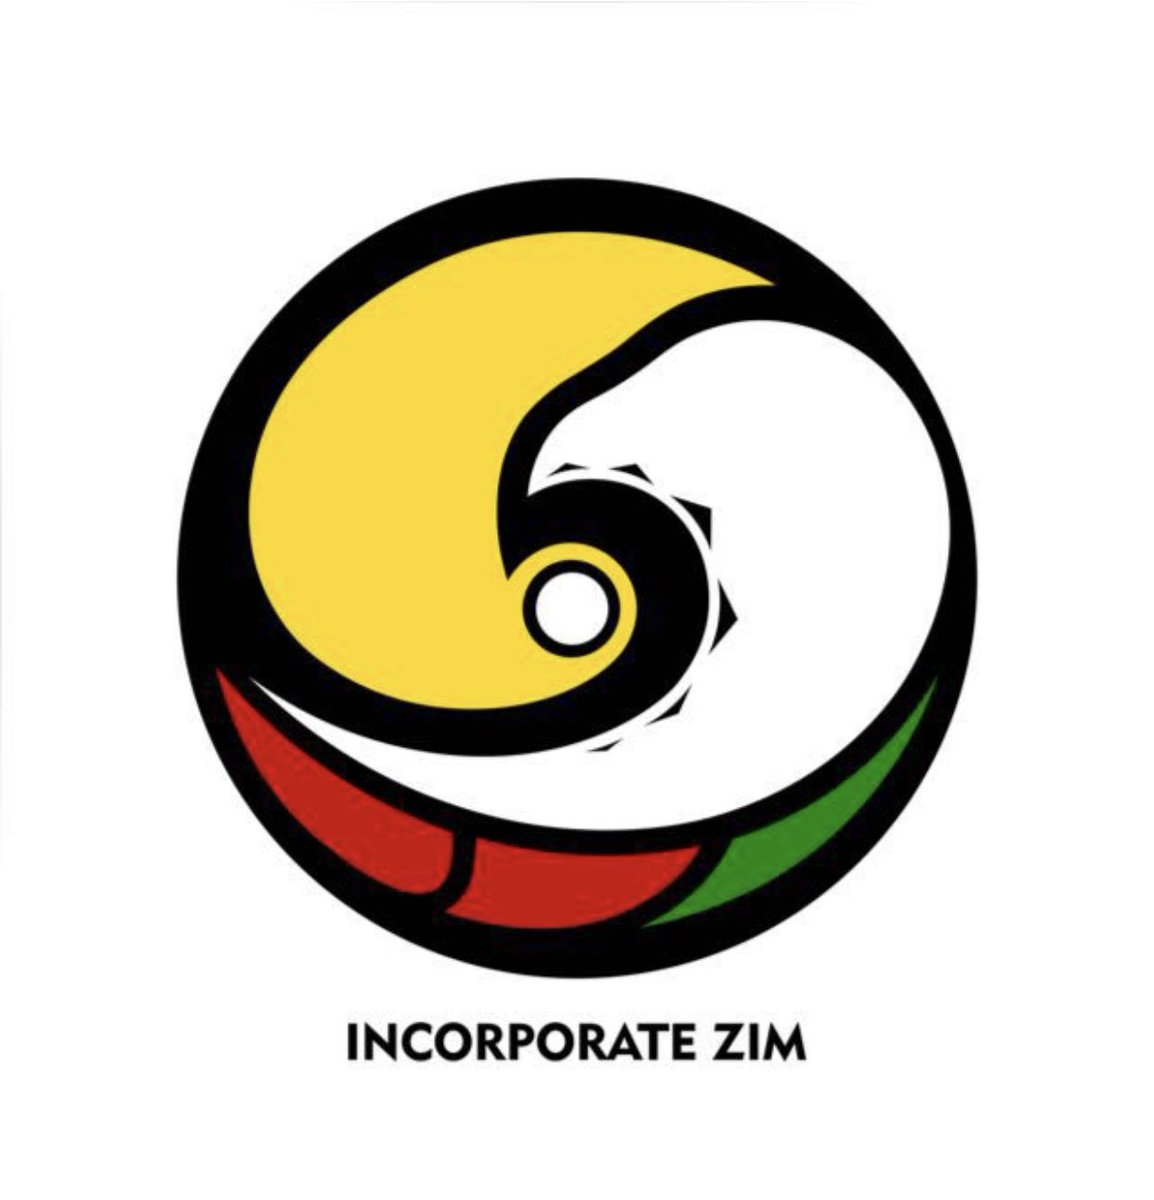 This Week @incorporatezim IZ  Officially Turns A Year Old. 🇿🇼✨A BIG thank you to ALL. Special mention to Zim Community News Live who in helping us celebrated profiled us on their paper. ❤️ https://t.co/qdnOEtADcV